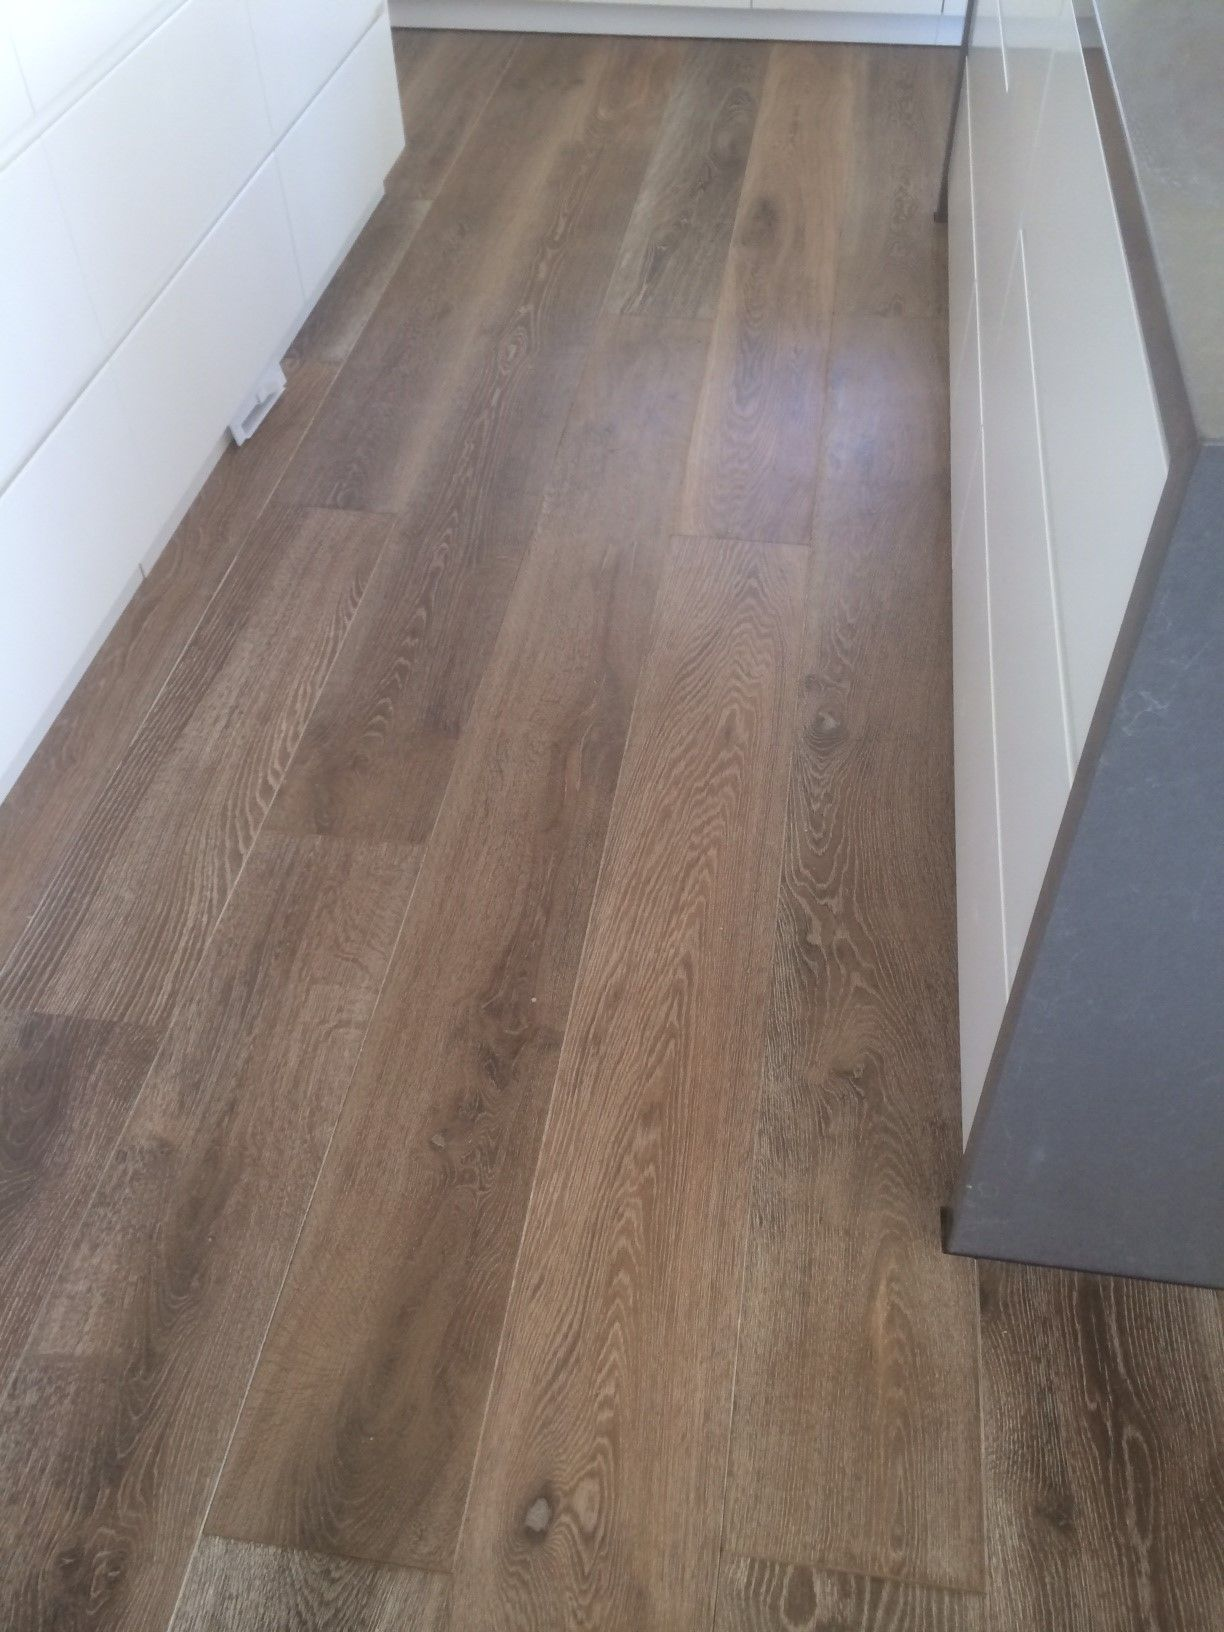 Driftwood Lacquer French Oak Floor 220 X 21 X 6mm Engineered And Prefinished French Oak Flooring Timber Flooring Engineered Flooring